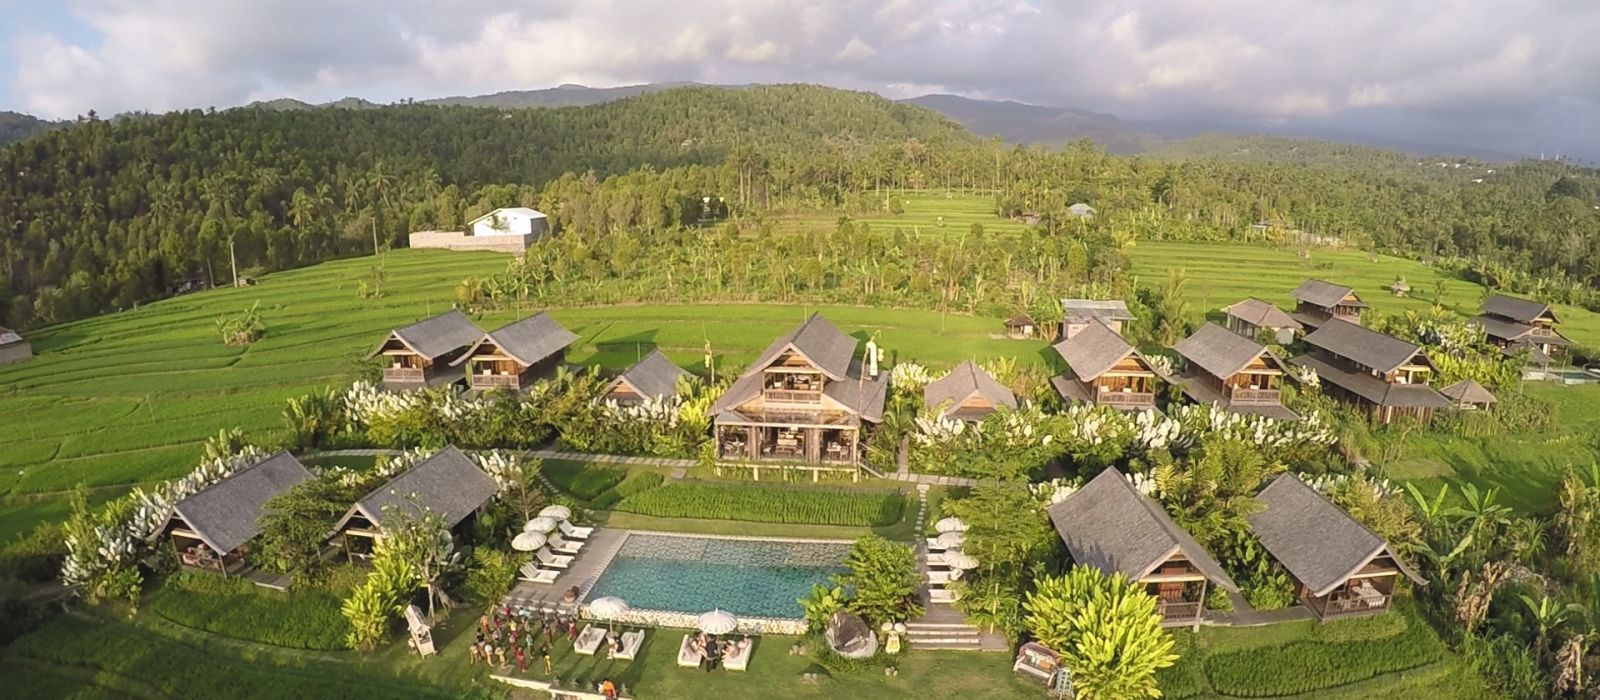 Hotel Sanak Retreat Indonesia